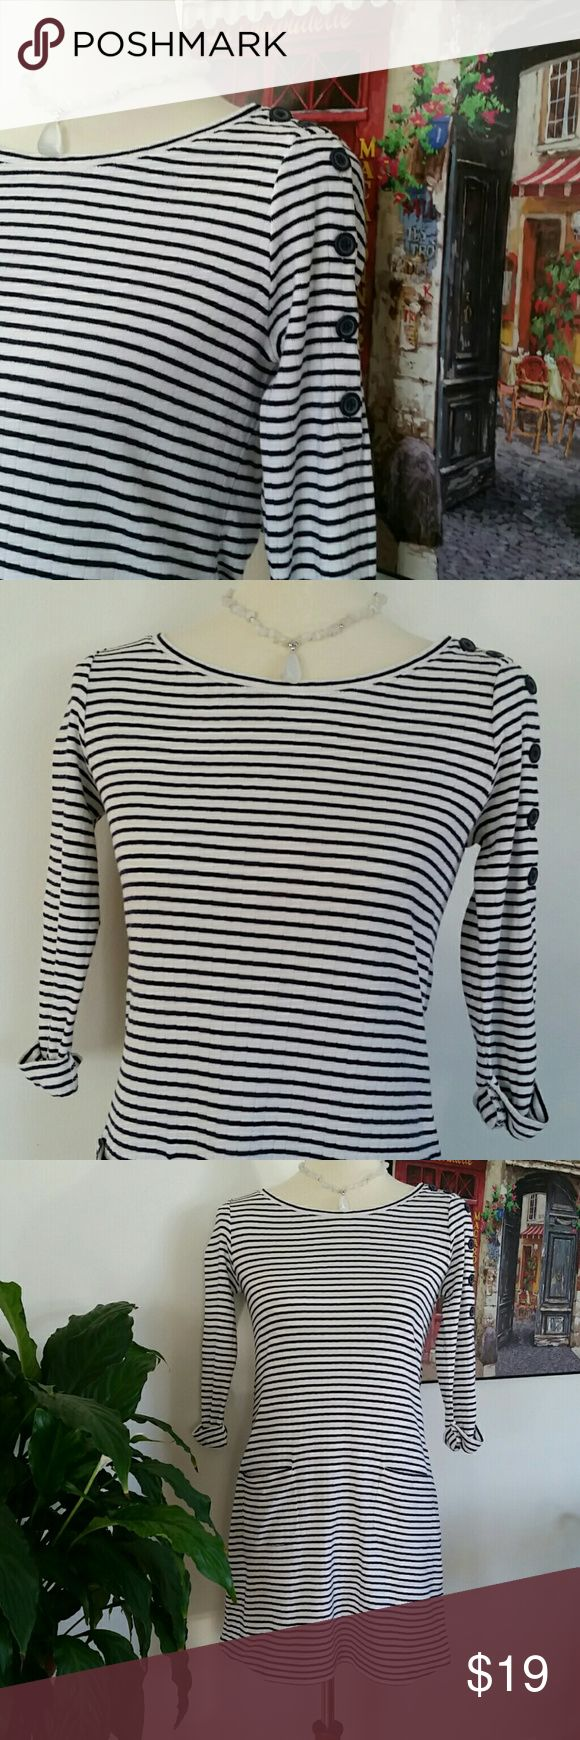 Cute GAP Dress Simple and comfy adorable navy & white colored striped dress. 3/4 length sleeves, two front pockets with one sleeve accented with decorative buttons. Perfect for weekend wear or a casual day out. 100% Cotton, Size XS. Good condition. GAP Dresses